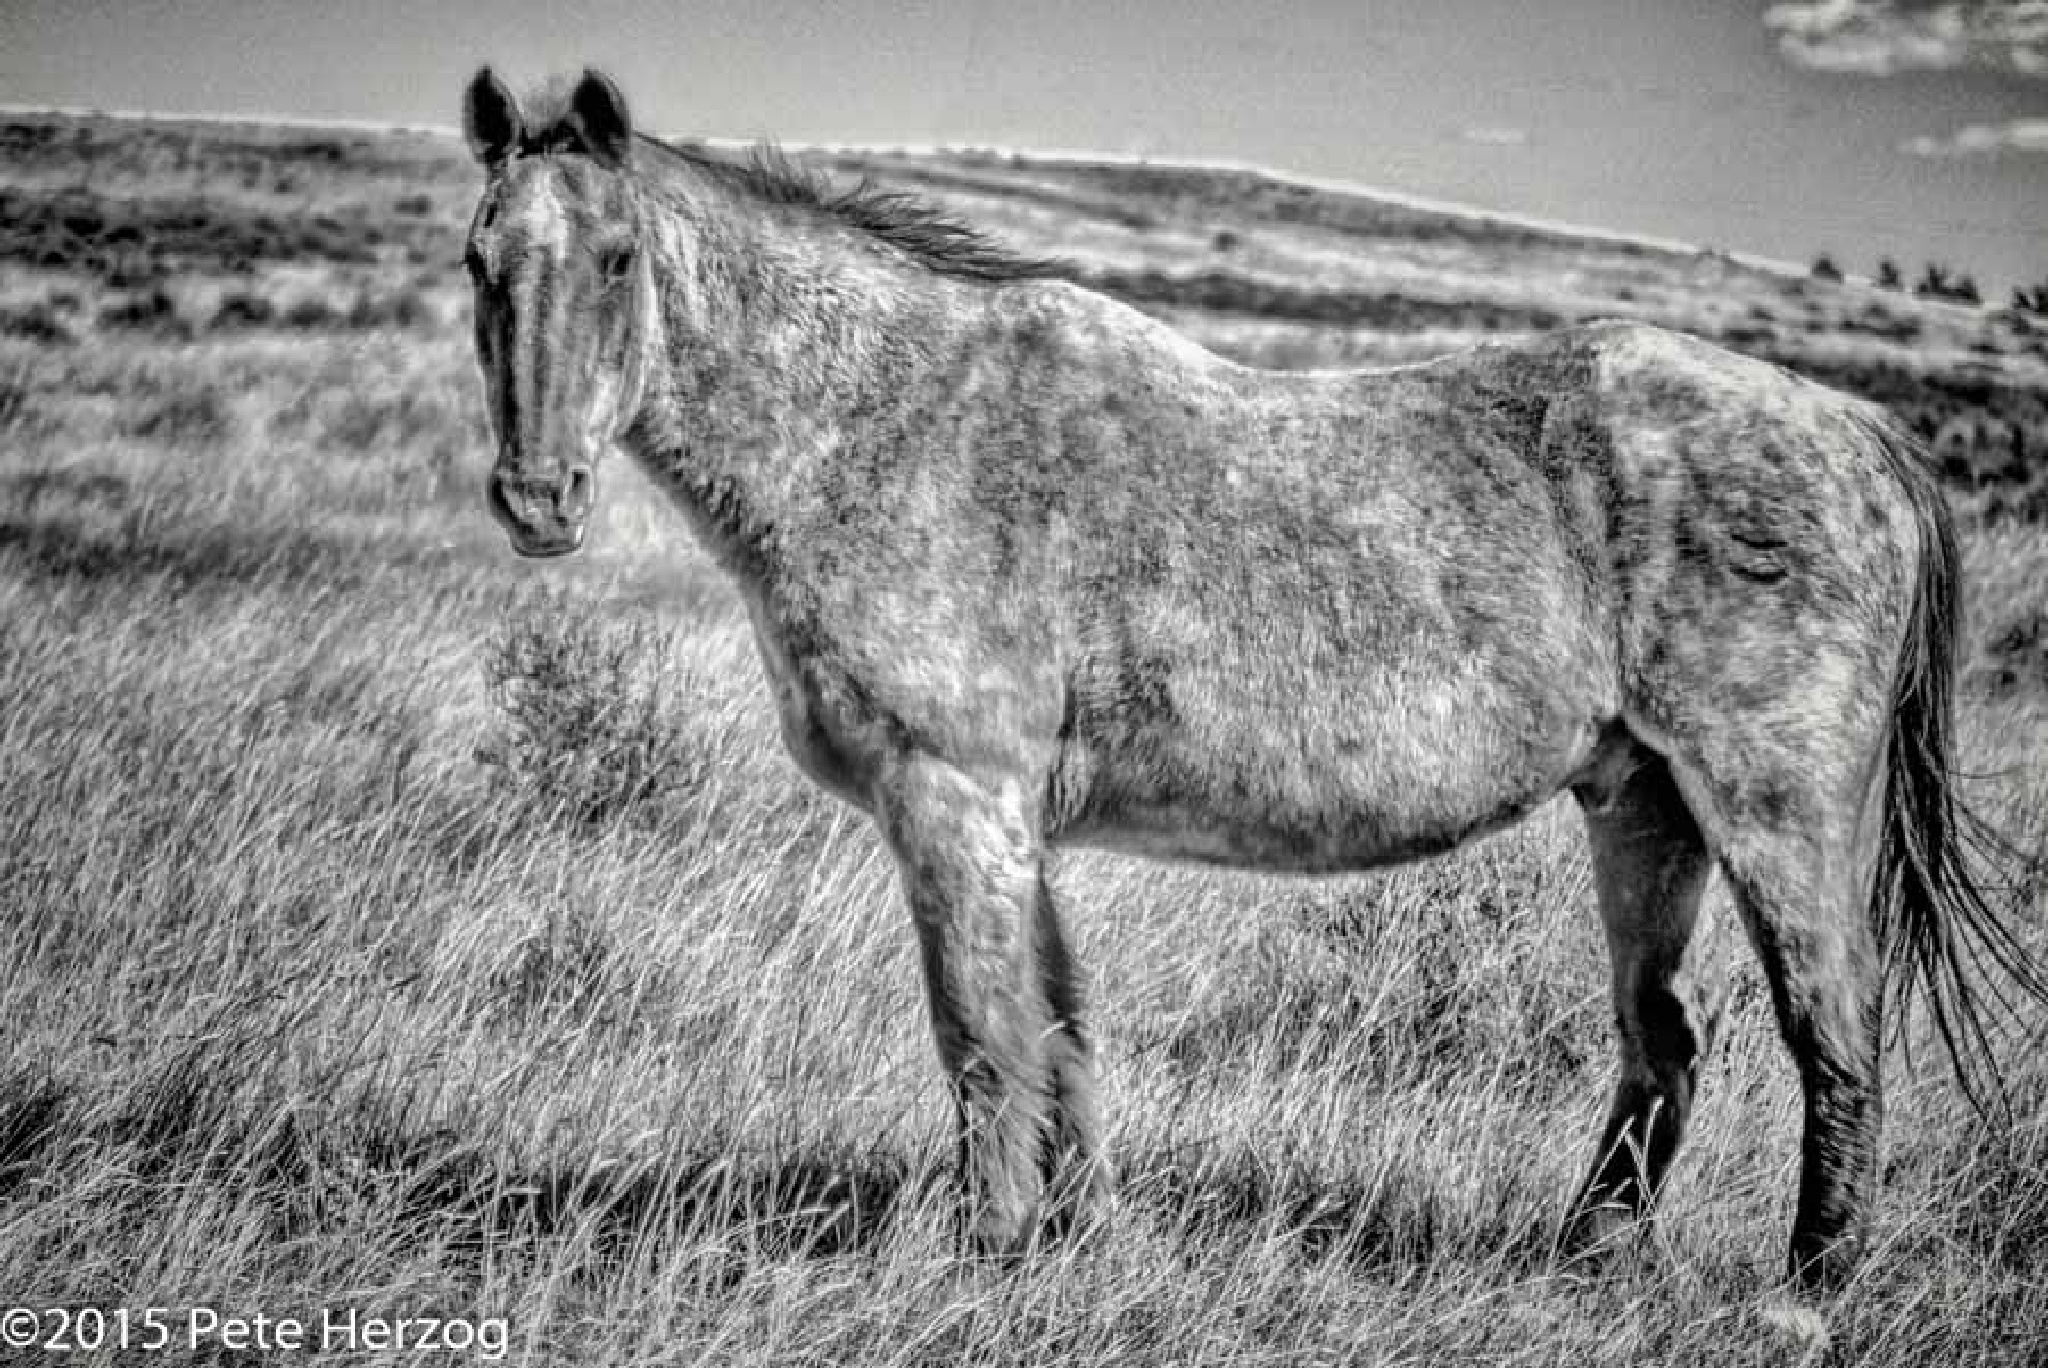 Horse on the Range by peter.herzog.3323